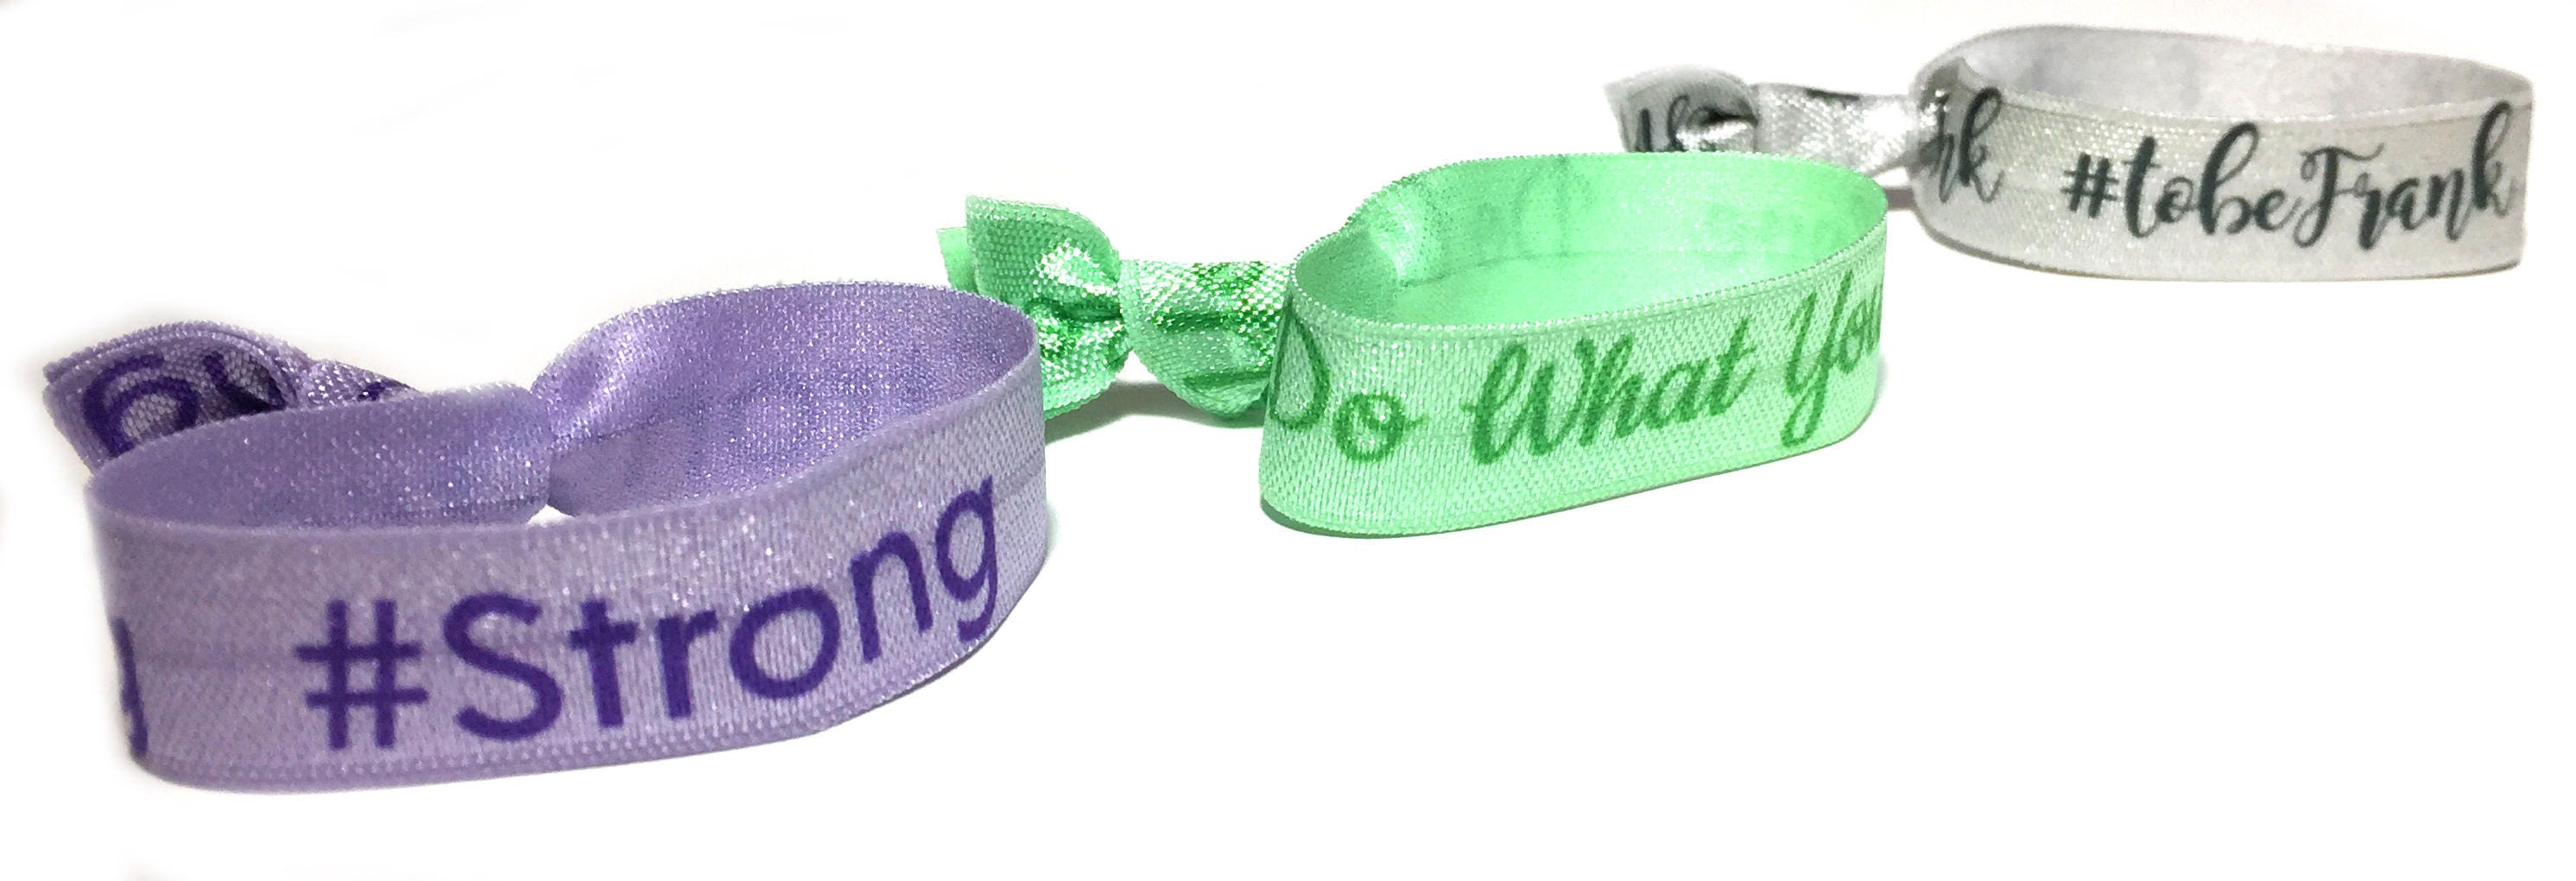 bands what wistband silicone for the tag marketing customized wristbands help